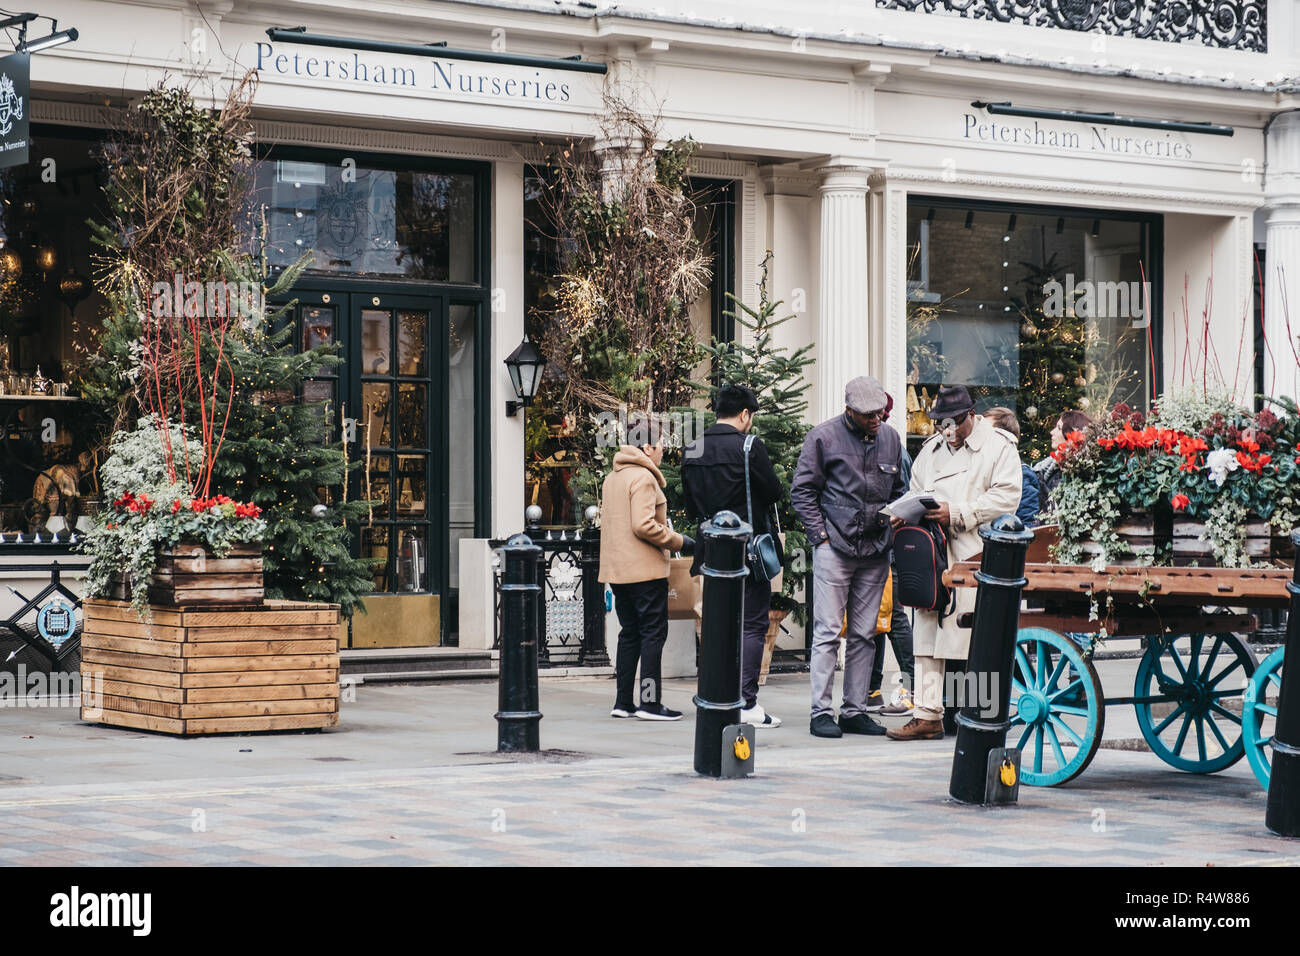 London Uk November 21 2018 People Walking Past Petersham Nurseries In Covent Garden London Uk Covent Garden Is A Famous Tourist Area In London Stock Photo Alamy